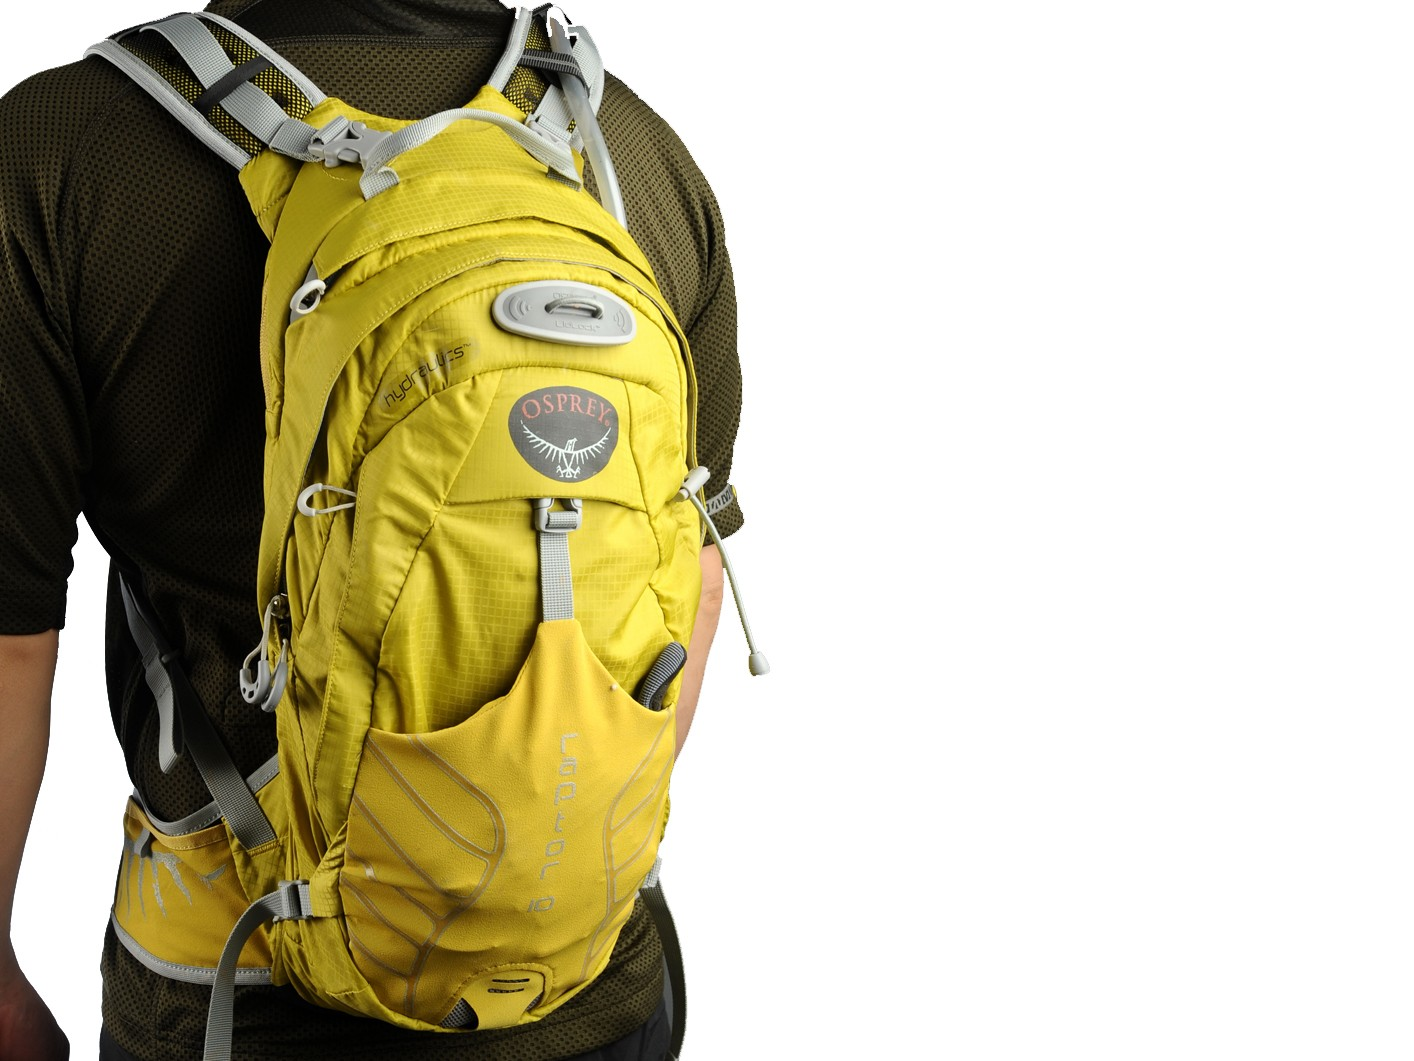 Osprey's new Raptor 10 hydration pack is light, comfortable, and exceptionally well designed